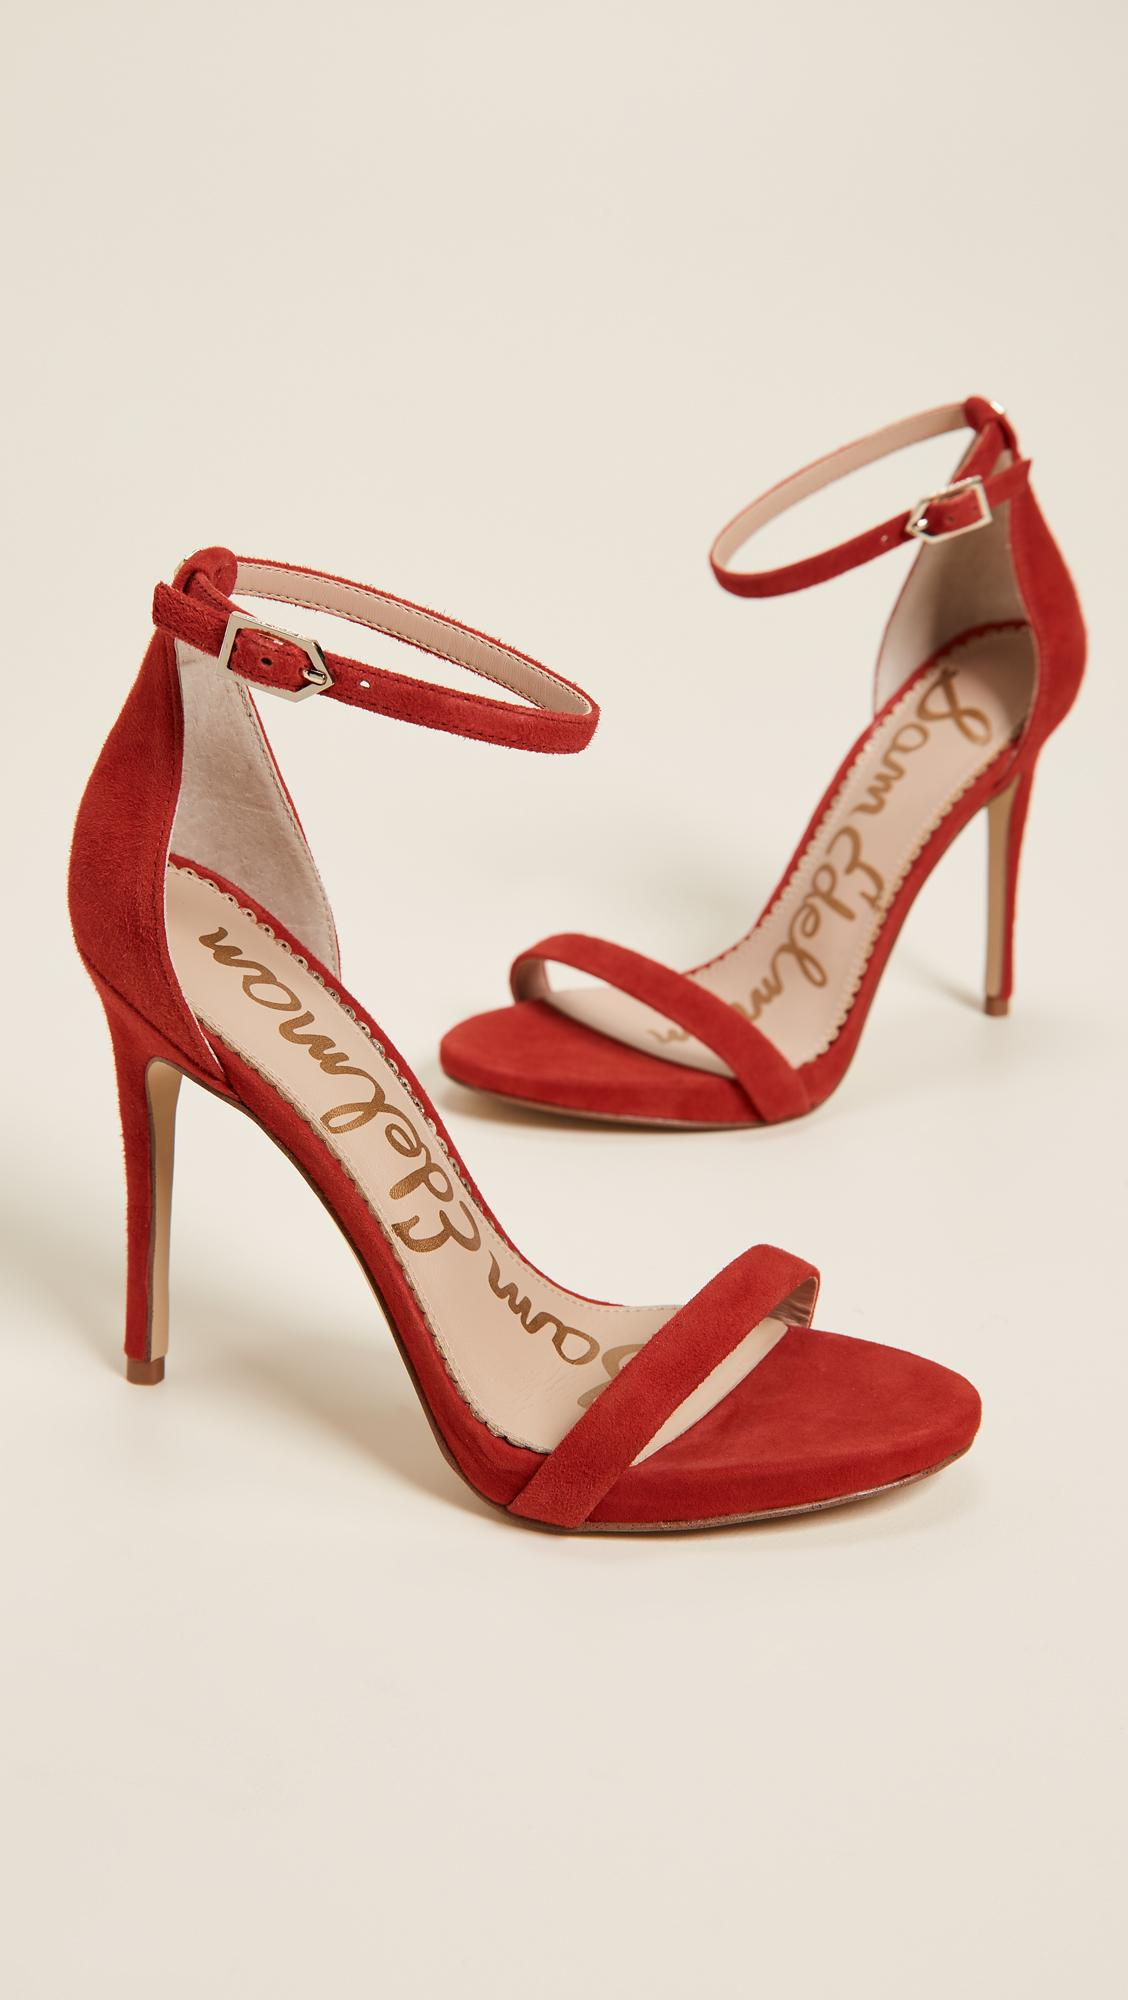 da80630f8188 Sam Edelman Ariella Sandals In Candy Red